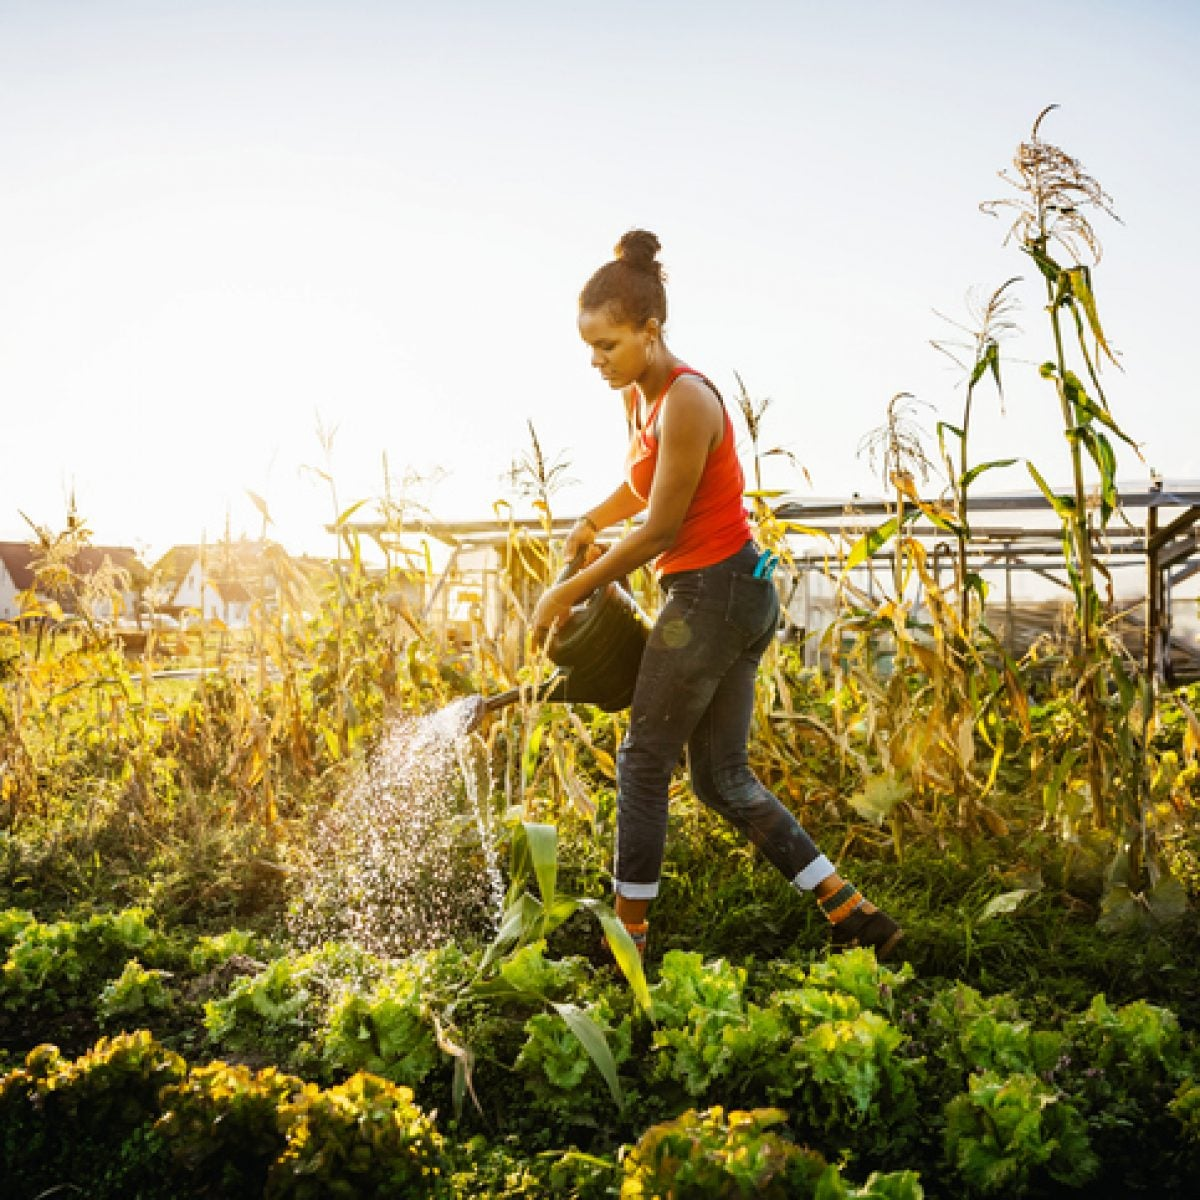 Just Bees And Things And Flowers: How Black Women Gardeners Will Survive In The COVID-19 Crisis